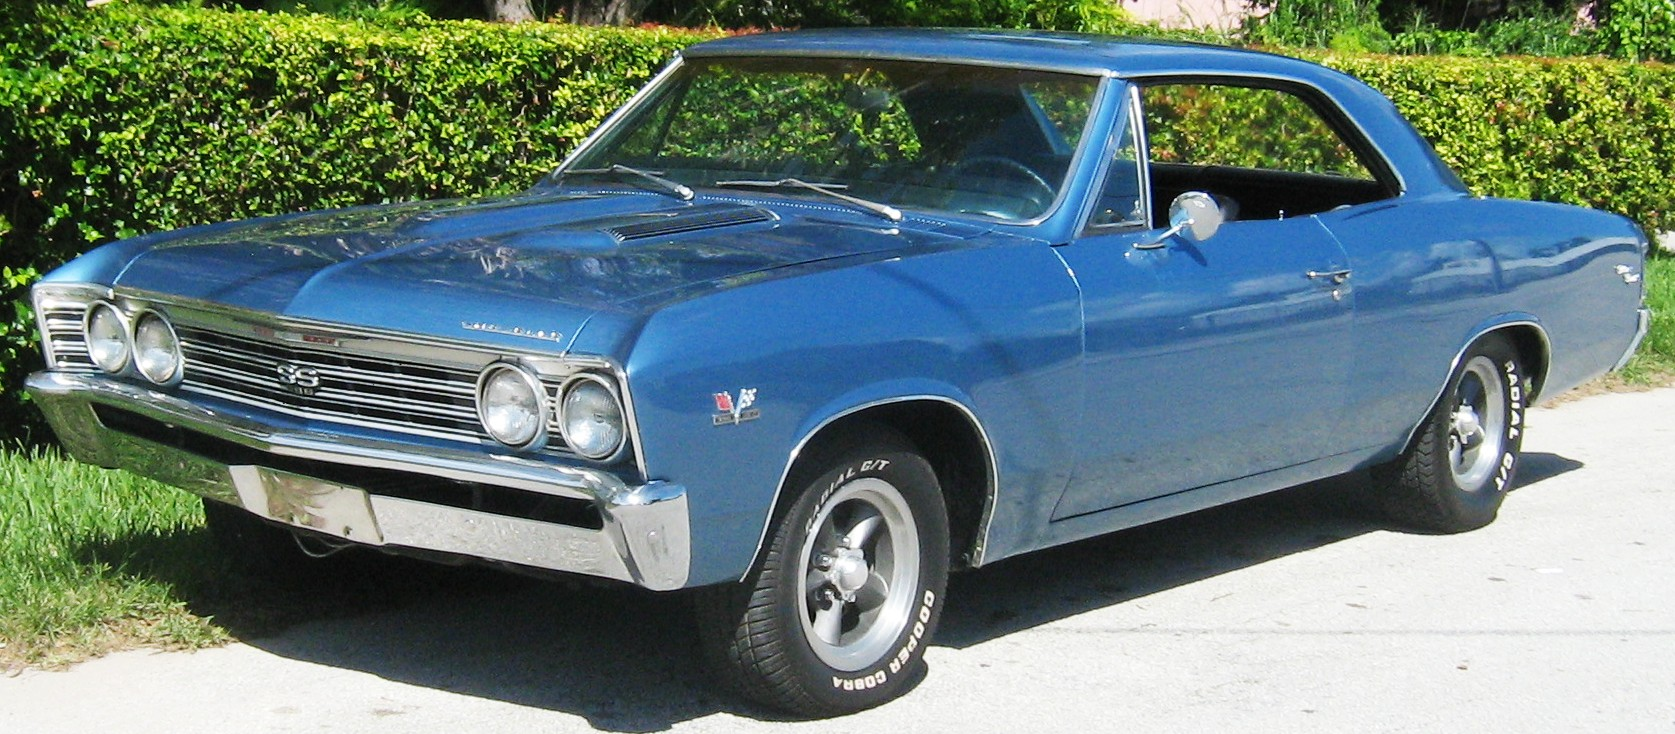 69 chevelle wiring diagram datatool system 3 my perfect chevrolet ss 396 3dtuning probably the best coupe 1967